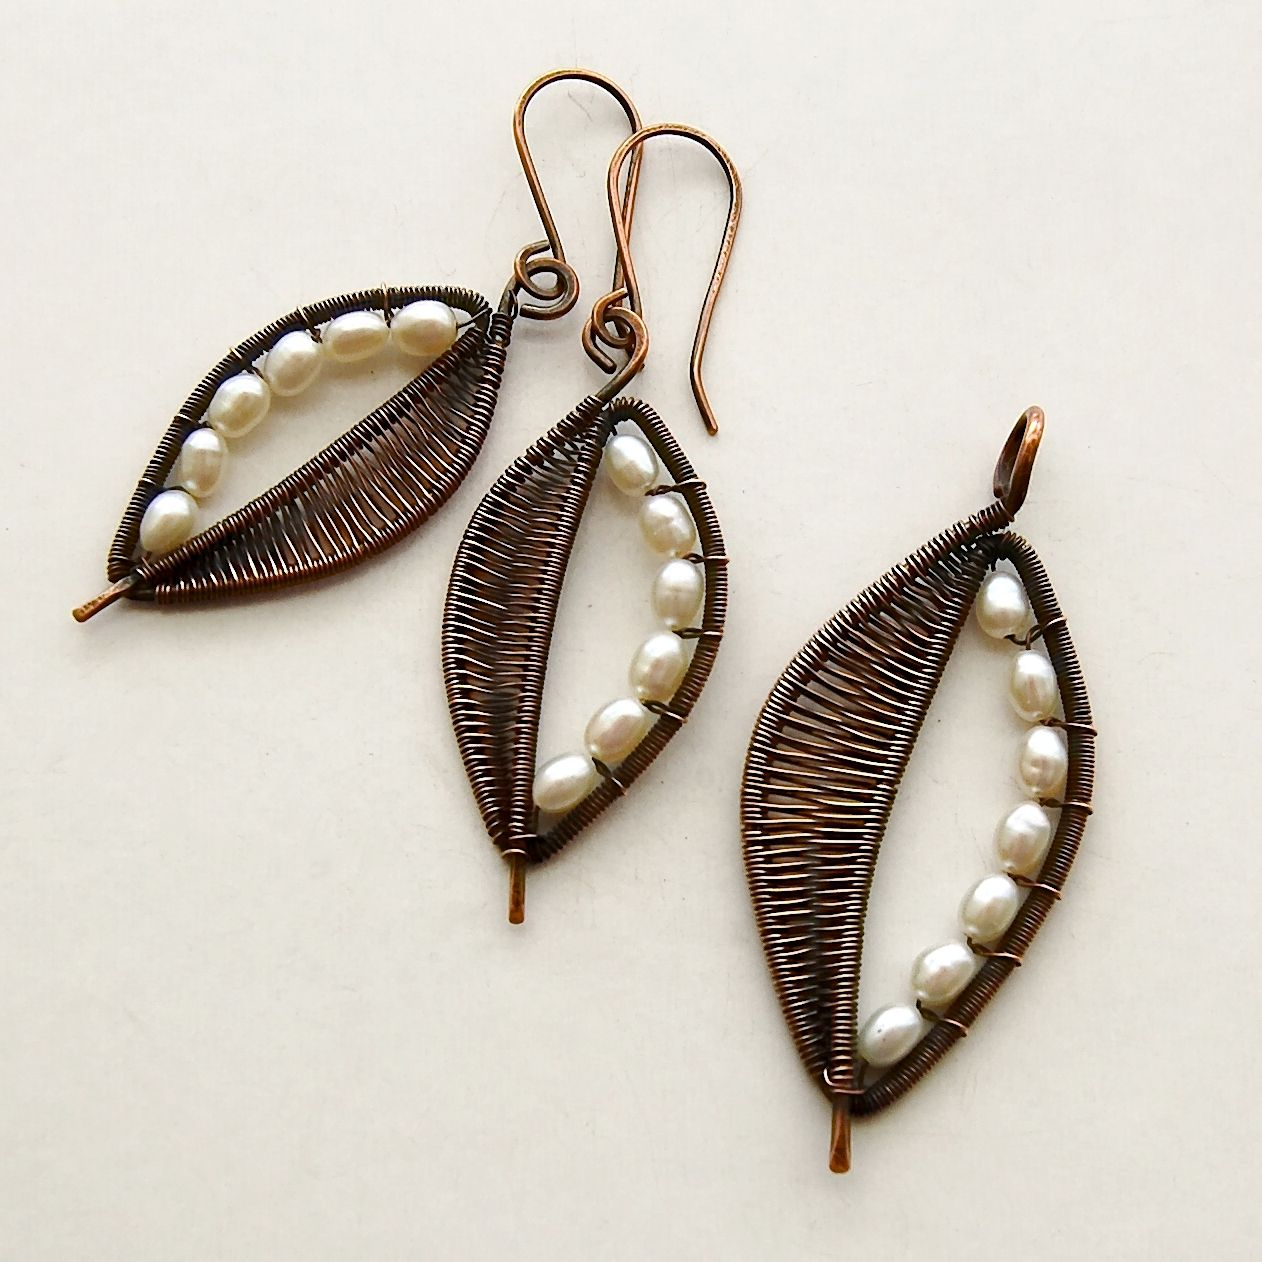 Wire Fantasies | jewelry making | Pinterest | Wire wrapping, Wraps ...